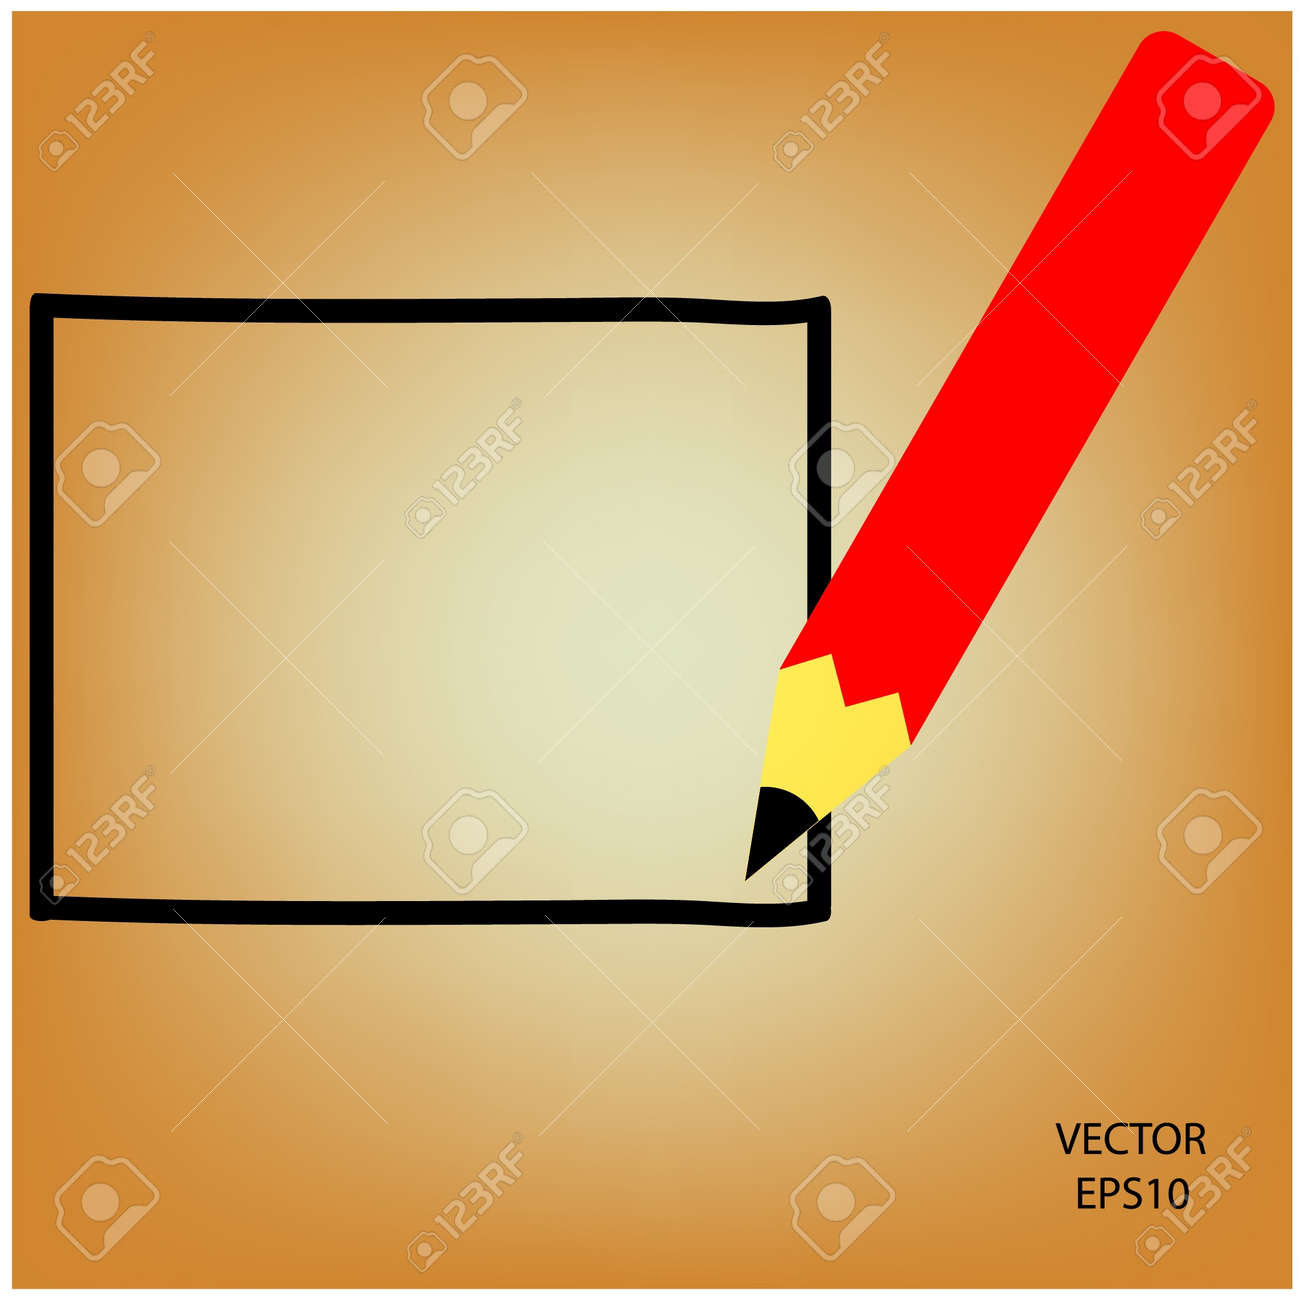 Drawing sketching by color pencil Stock Vector - 19124078